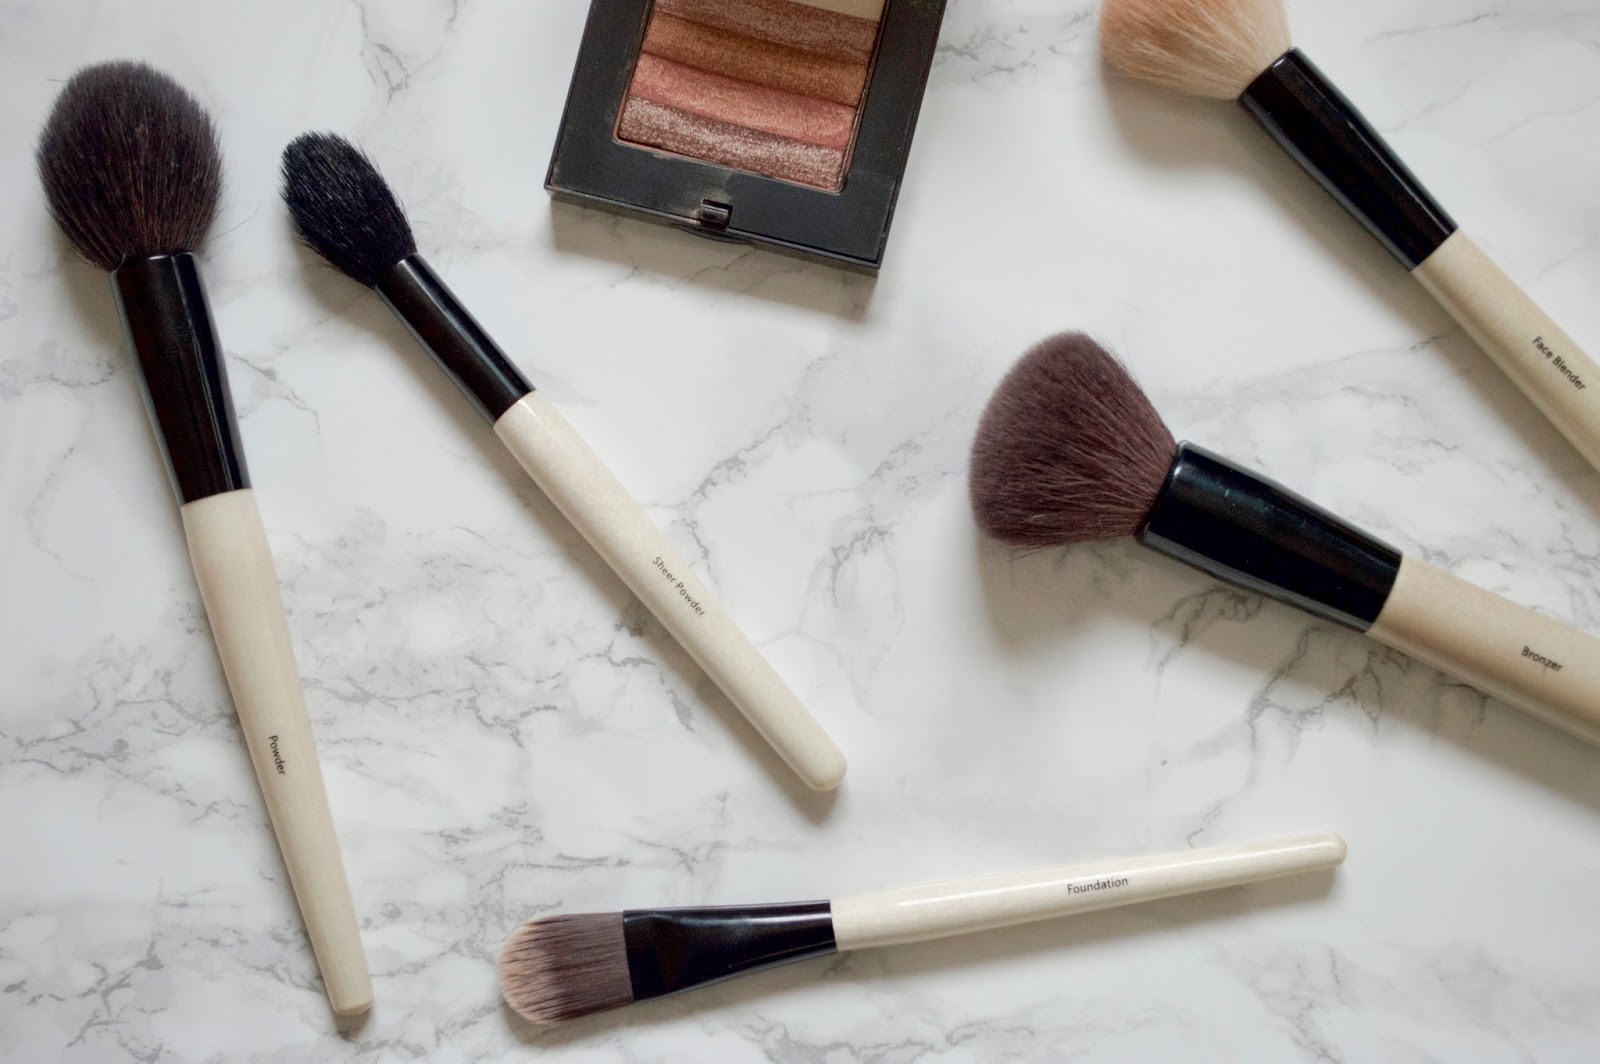 bobbi brown brushes uses. over the last 6 years, i have managed to accumulate a collection of quite few bobbi brown brushes. not day goes by where haven\u0027t used at least one brushes uses t